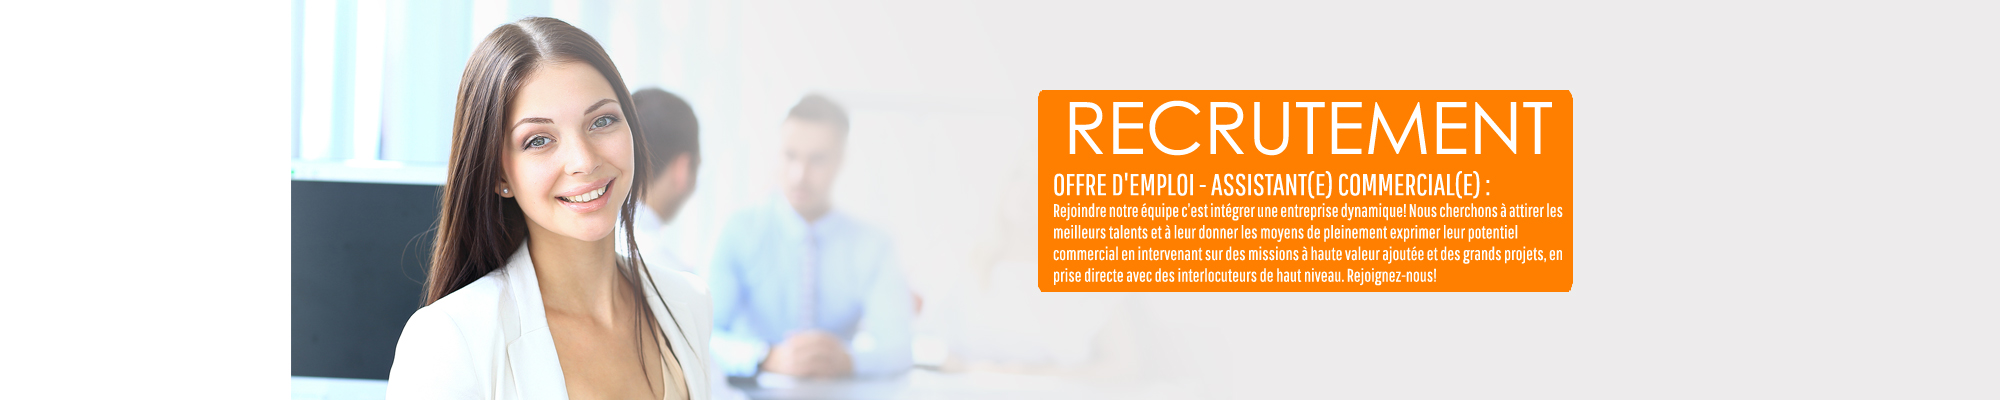 4055921Slideshow-recrutement-2018